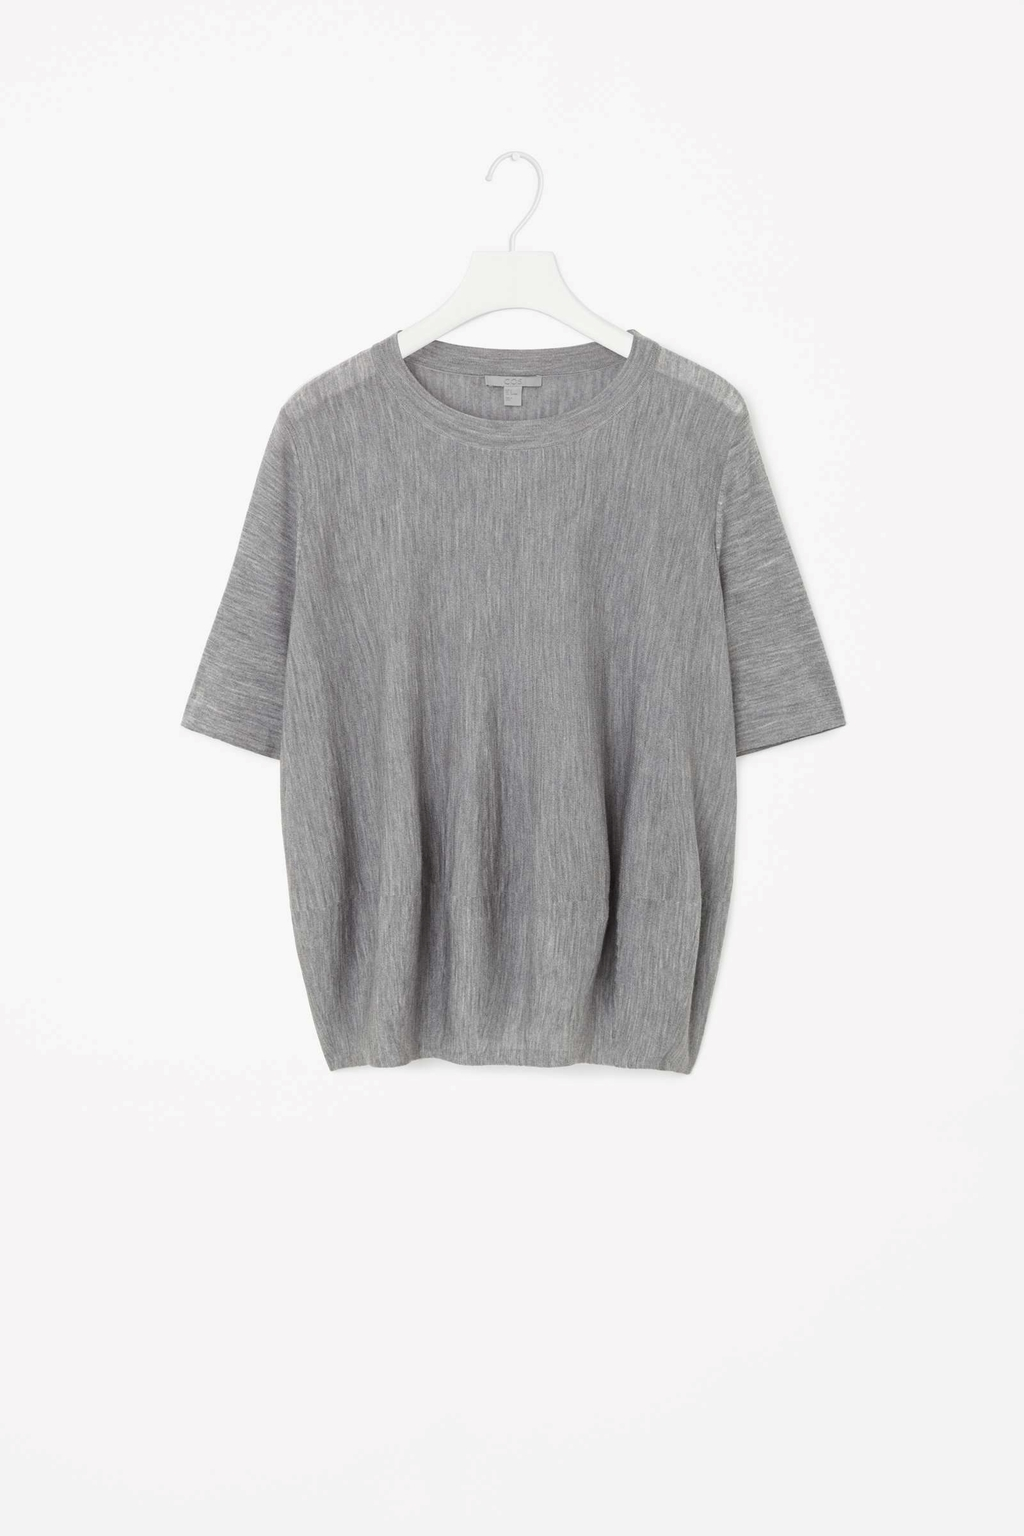 Merino Wool Top - pattern: plain; predominant colour: mid grey; occasions: casual; length: standard; style: top; fibres: wool - 100%; fit: loose; neckline: crew; sleeve length: short sleeve; sleeve style: standard; texture group: knits/crochet; shoulder detail: sheer at shoulder; season: s/s 2015; wardrobe: highlight